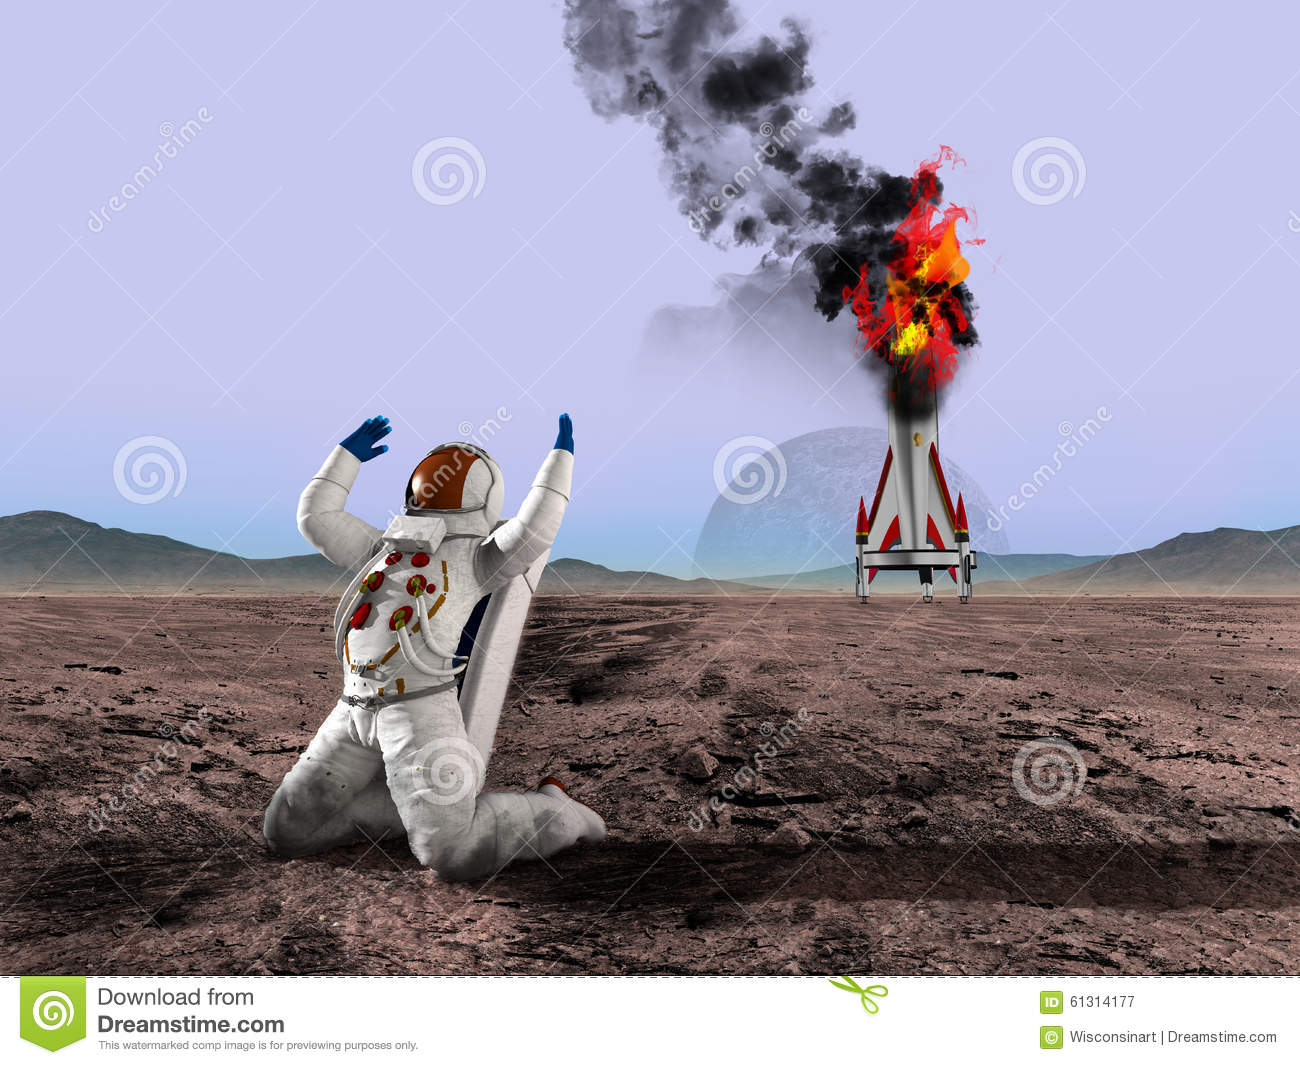 astronaut earth blowing up - photo #29